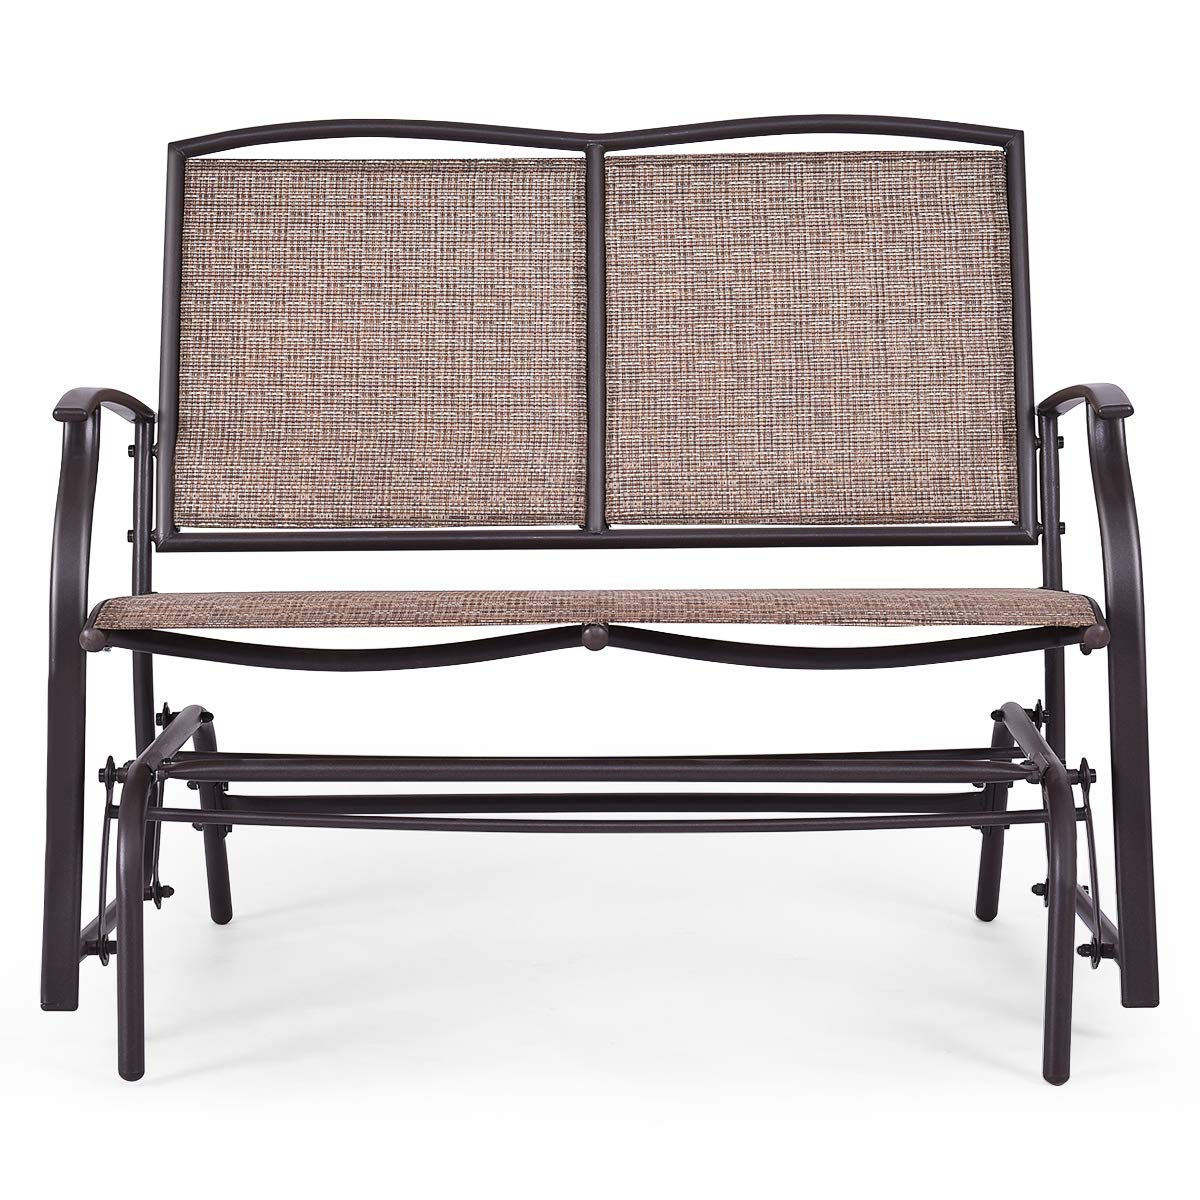 Famous Steel Patio Swing Glider Benches With Amazon : Wenst'skufan Patio Glider Chair, Outdoor (Gallery 20 of 30)